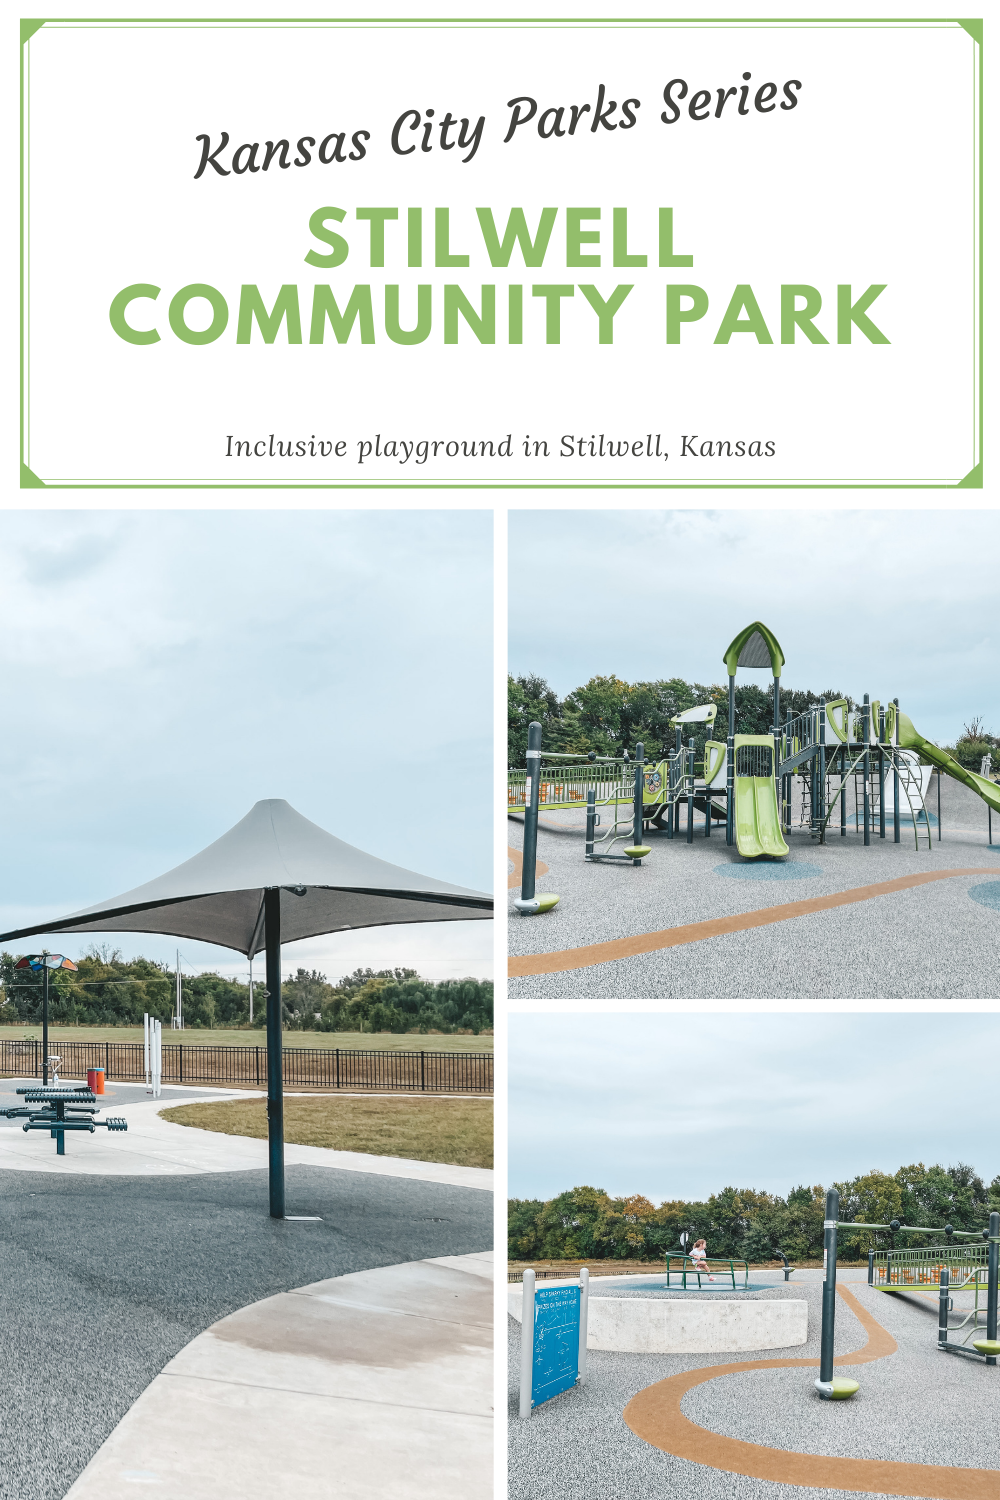 Stilwell Community Park Reviews - Stilwell Park is an inclusive playground in Stilwell, Kansas, perfect for our Kansas City Parks Series!